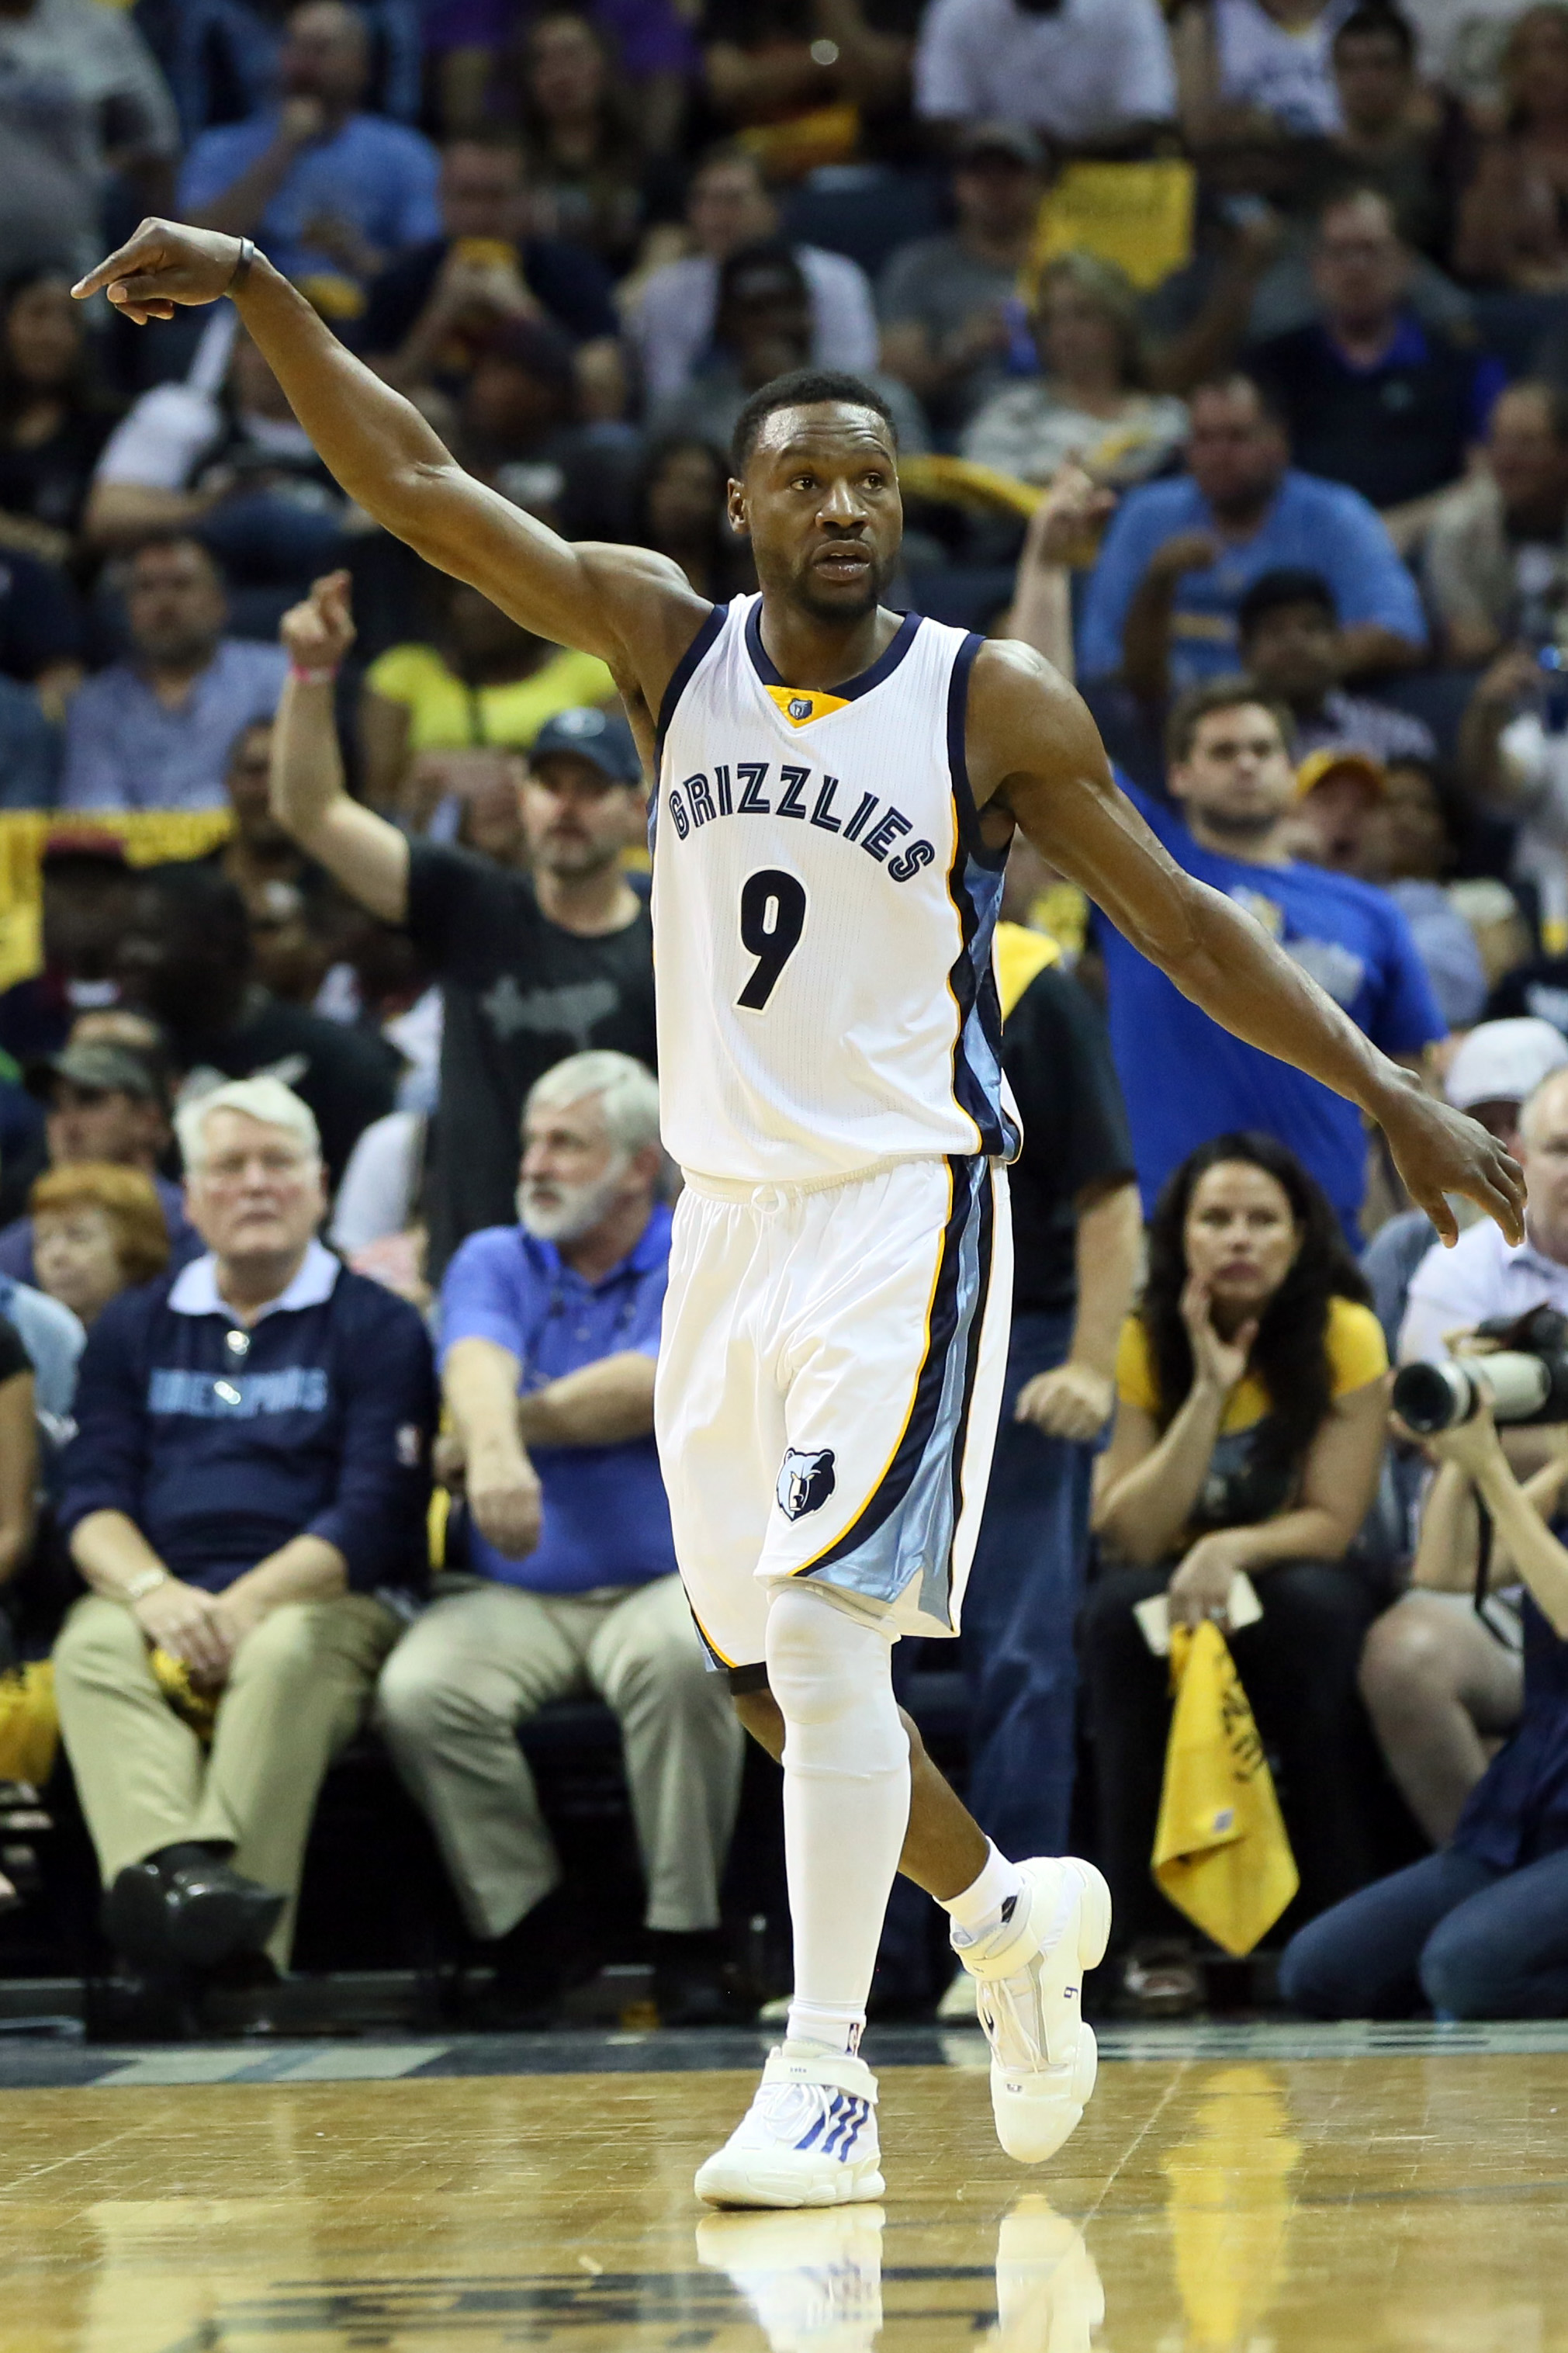 If Tony Allen is supposed to be a key floor spacer for your offense, you're in trouble